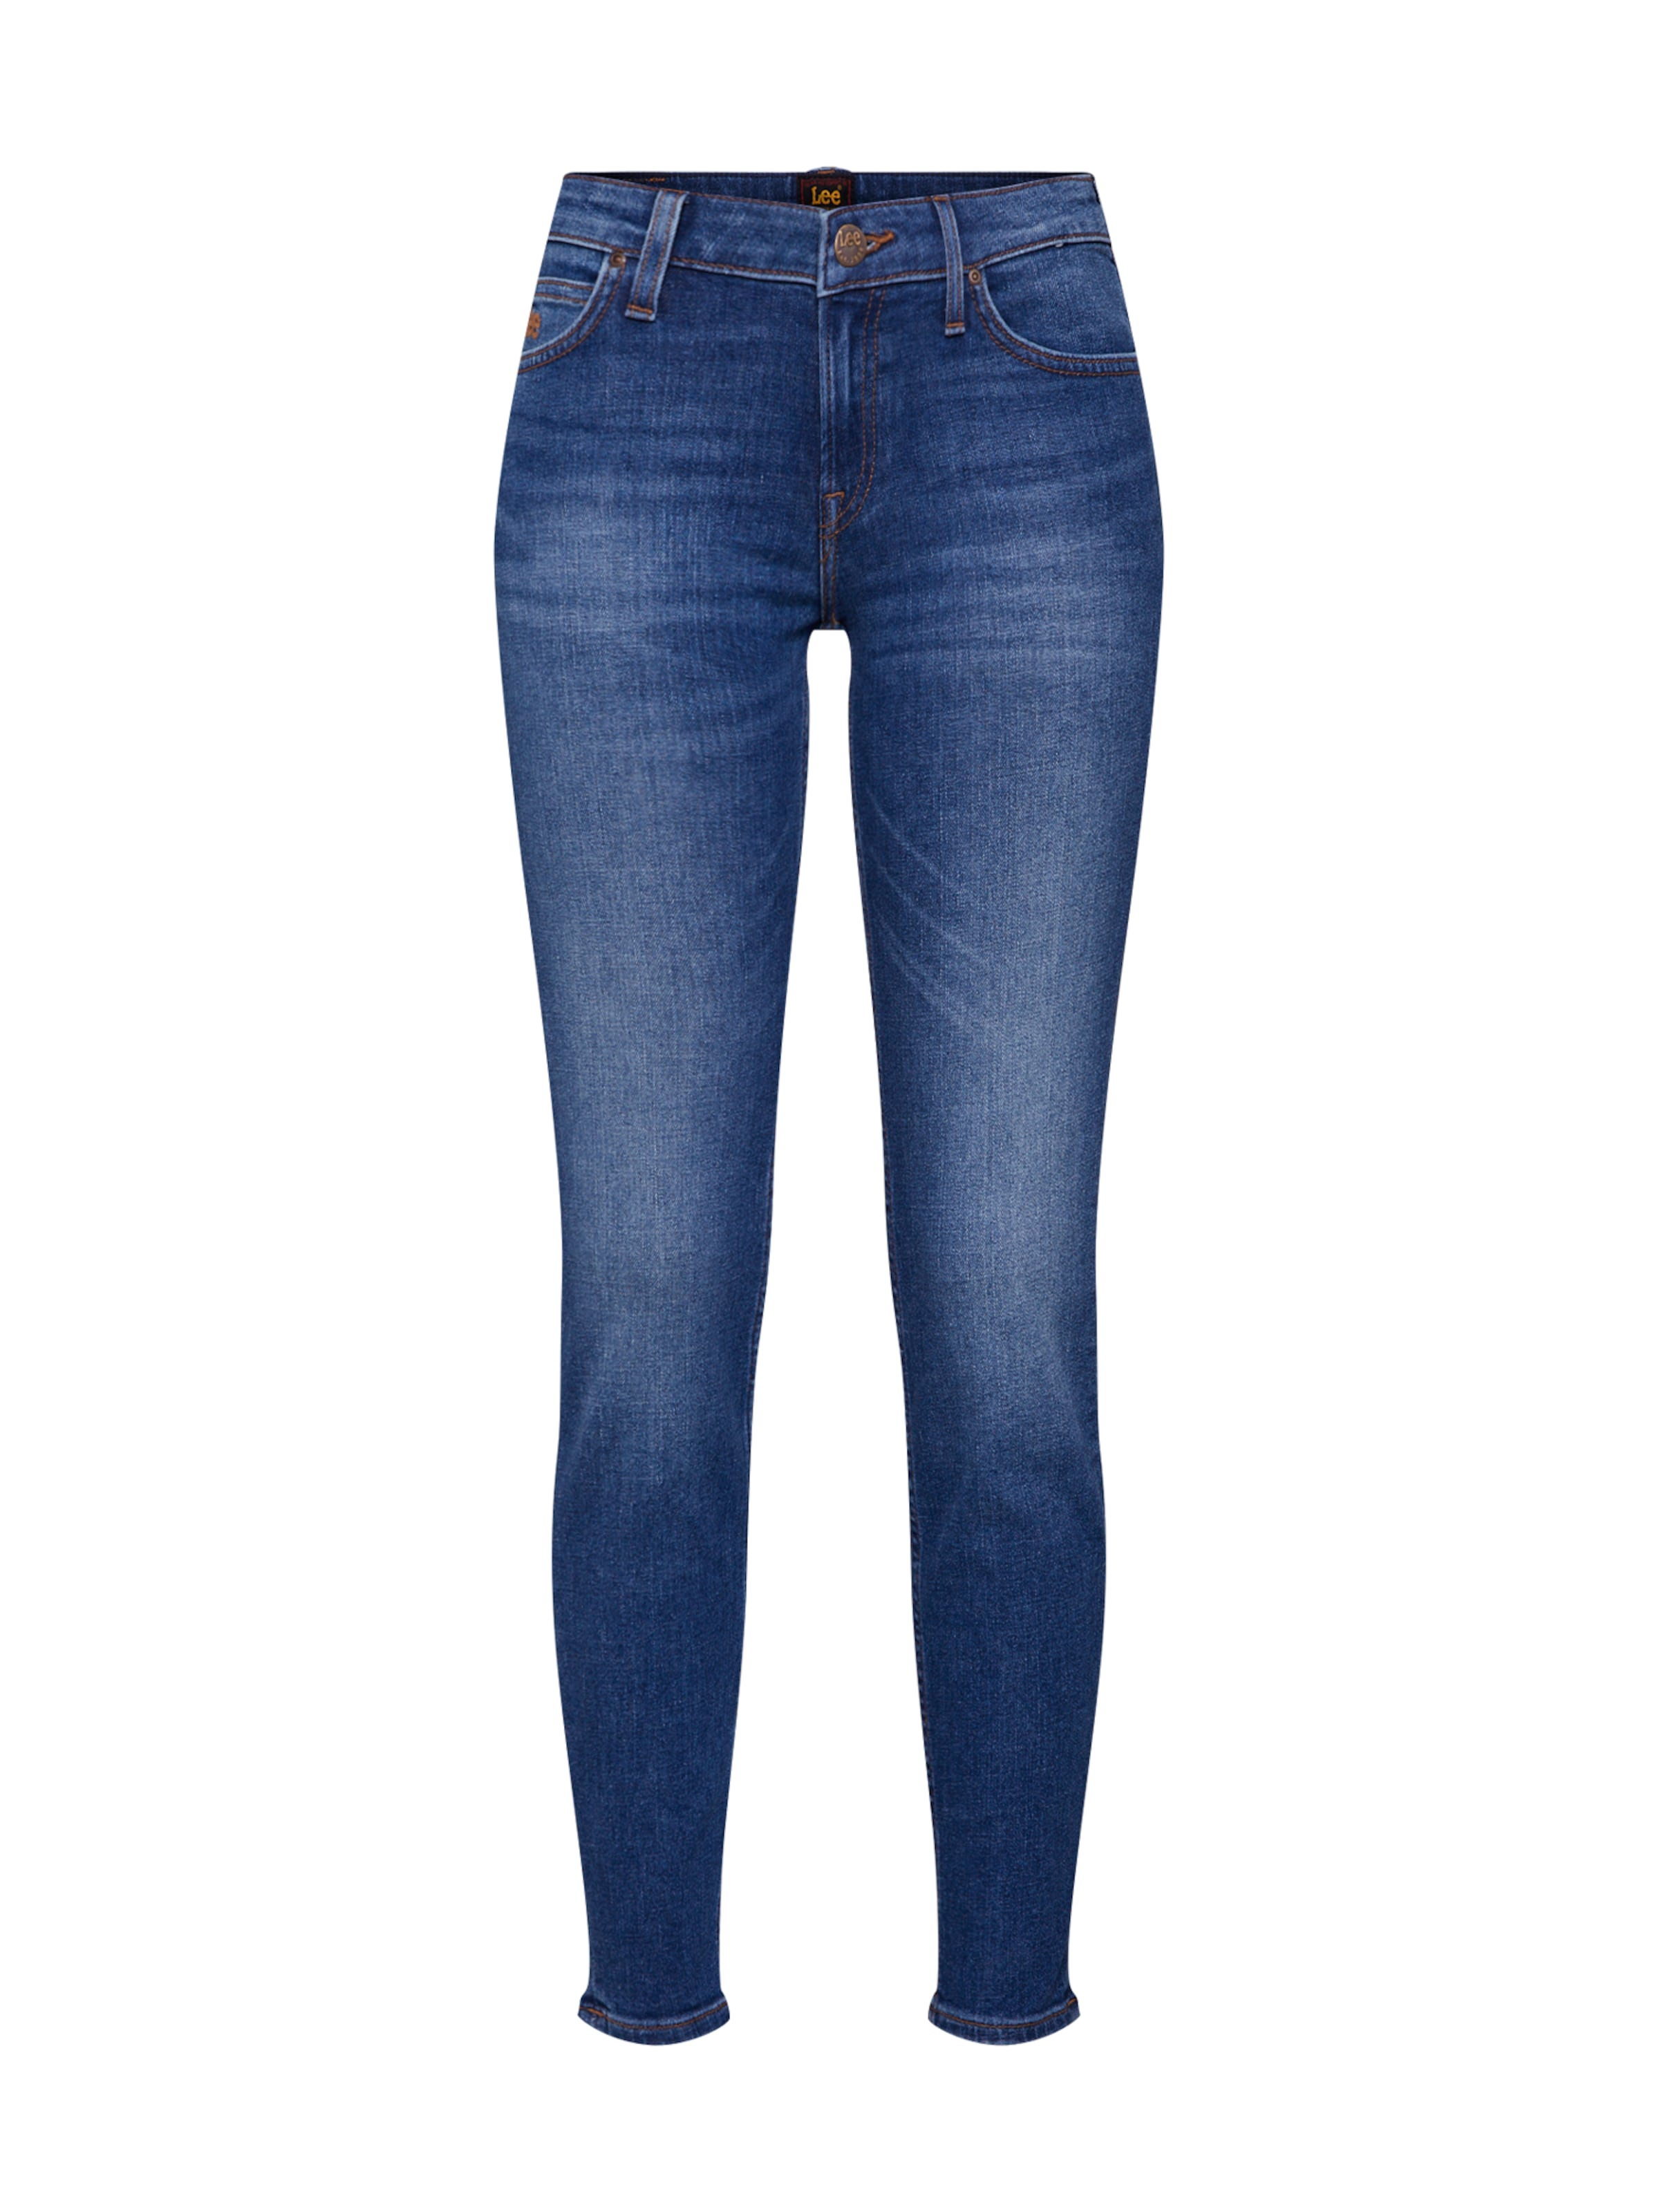 In Denim 'scarlett' In 'scarlett' Bleu Bleu LeeJean Denim LeeJean 4AjRL35